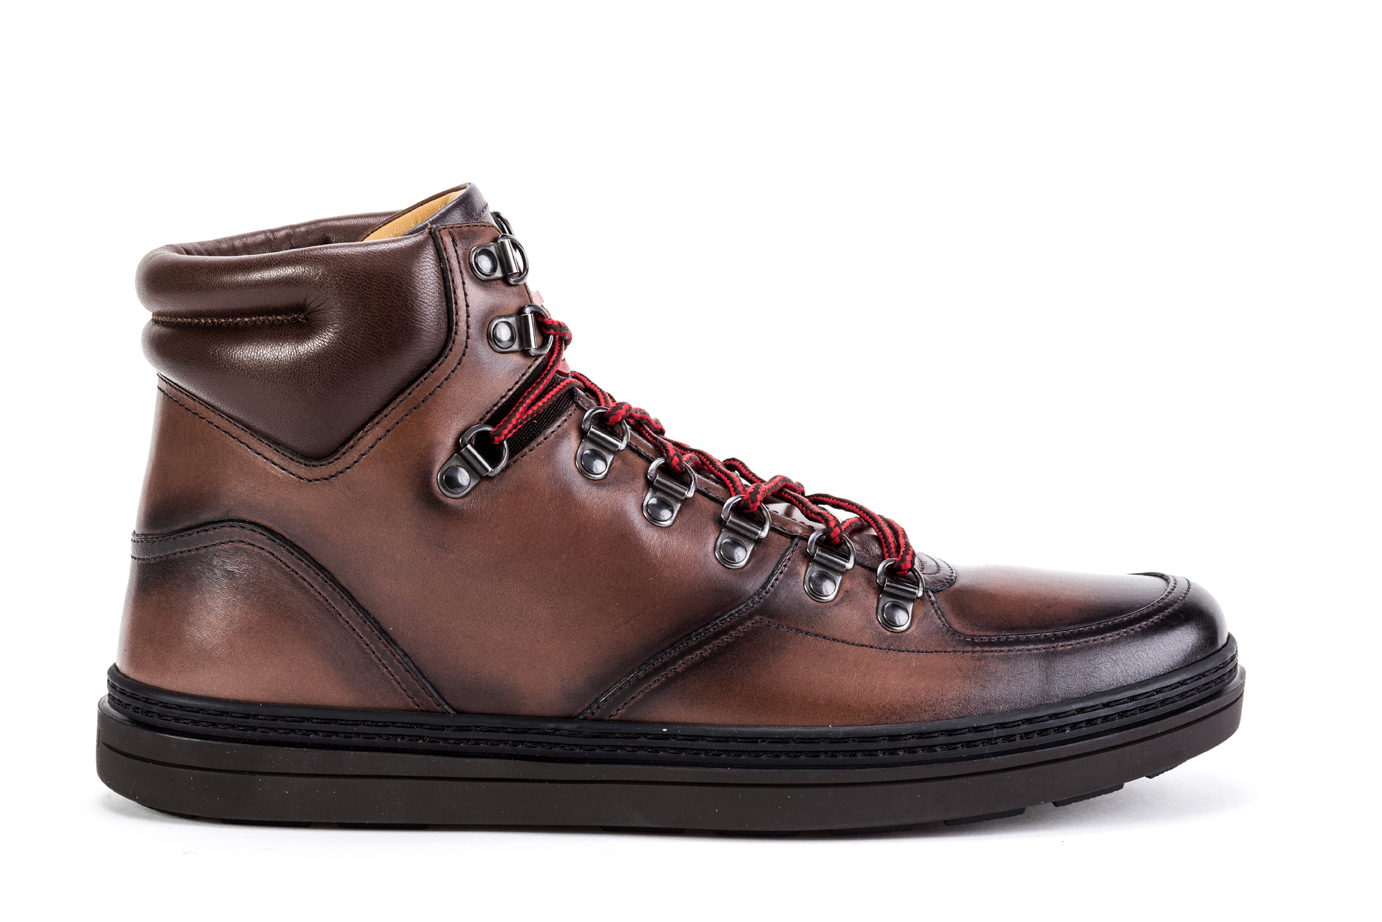 b8883b7563c Mens Ankle Boots GUCCI Trekking Shoes 368496 B66Y0 2140 Hiking Brown ...